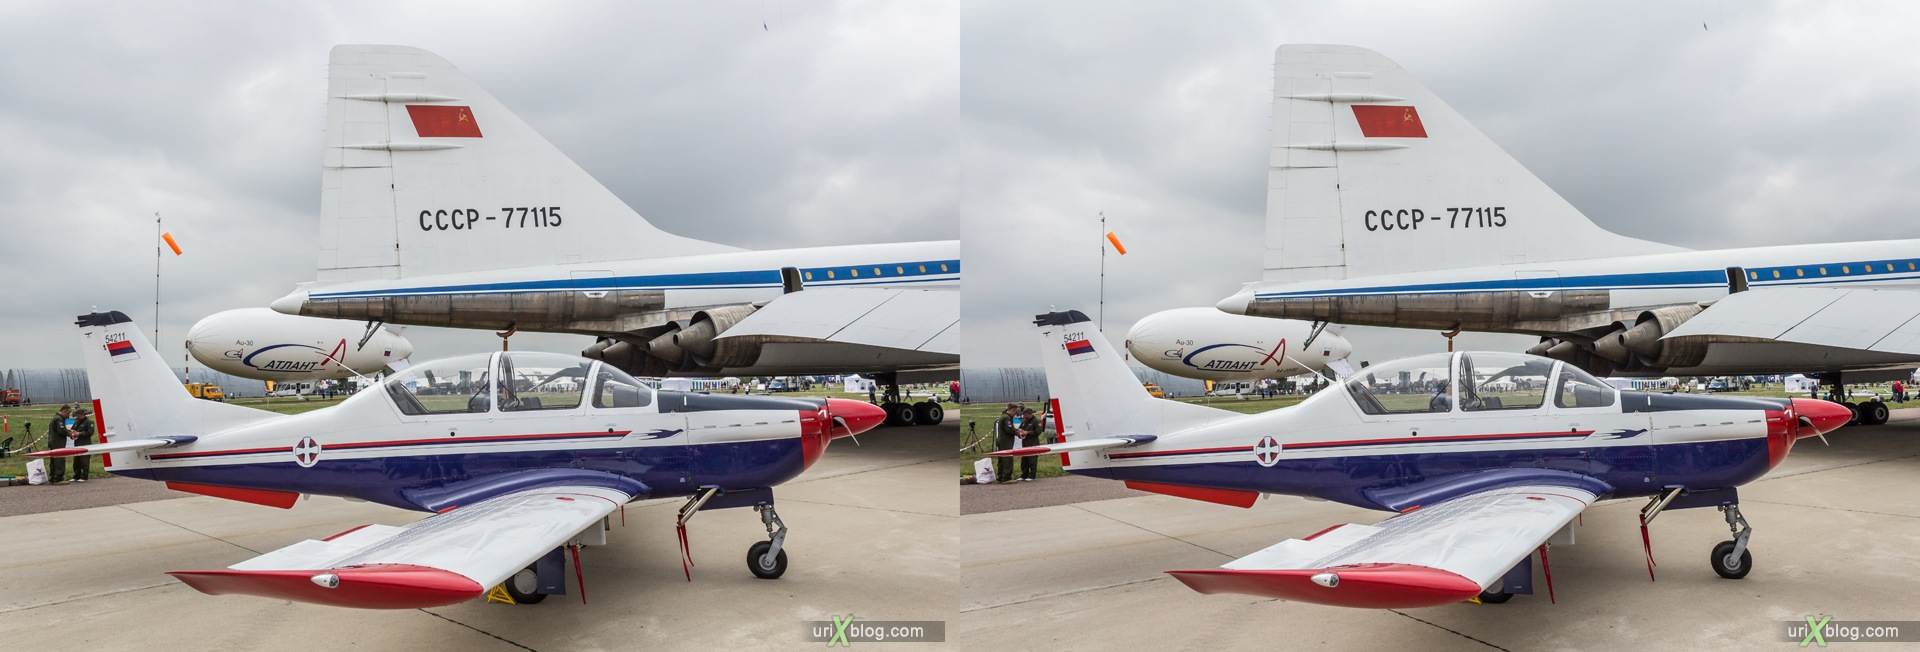 2013, Lasta-95, MAKS, International Aviation and Space Salon, Russia, Ramenskoye airfield, airplane, 3D, stereo pair, cross-eyed, crossview, cross view stereo pair, stereoscopic